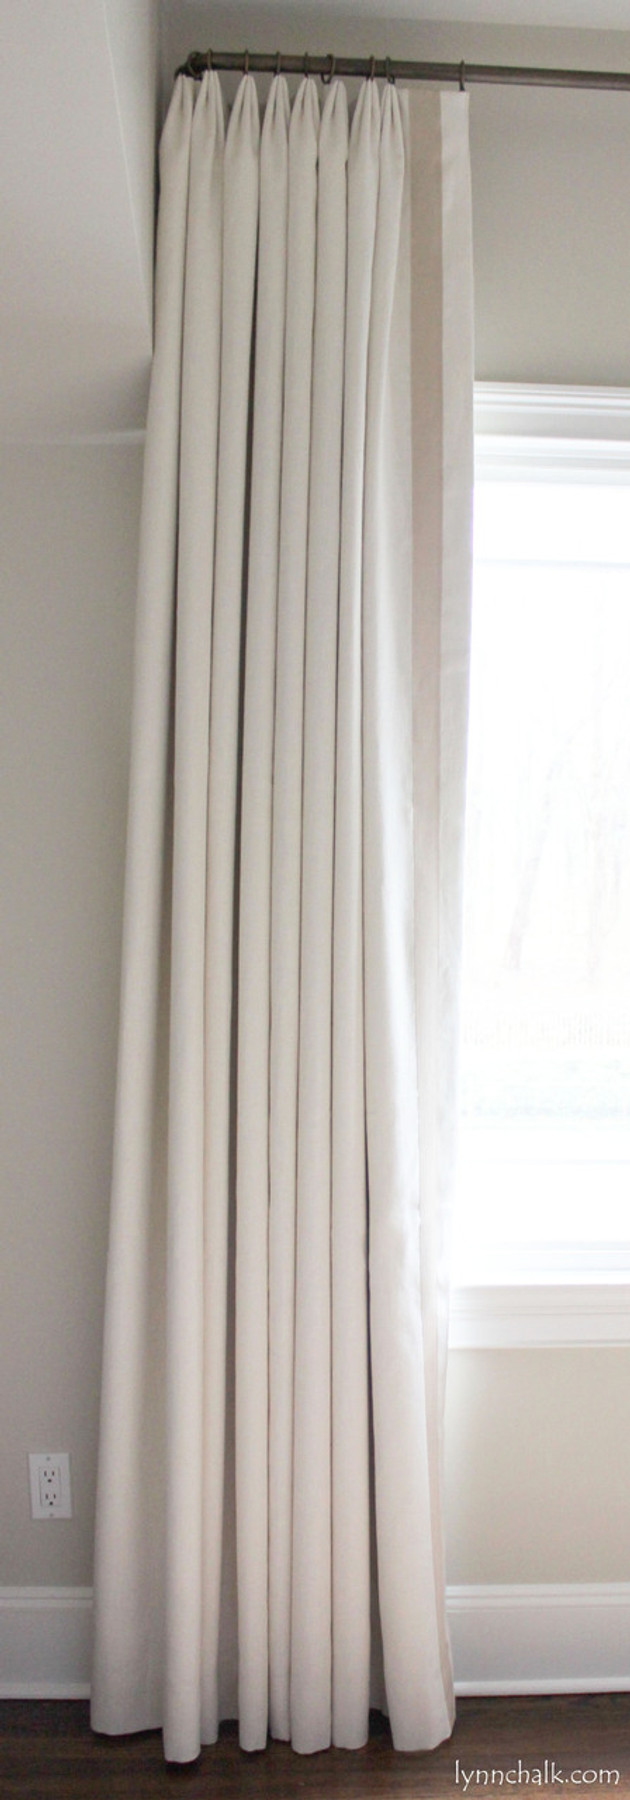 "Kravet Dublin Linen in Creme with 2"" Wide Samuel & Sons Grosgrain Ribbon Trim in Sand set in 1 1/2"" from edge.  Drapes are Double Width with Euro Pleat."